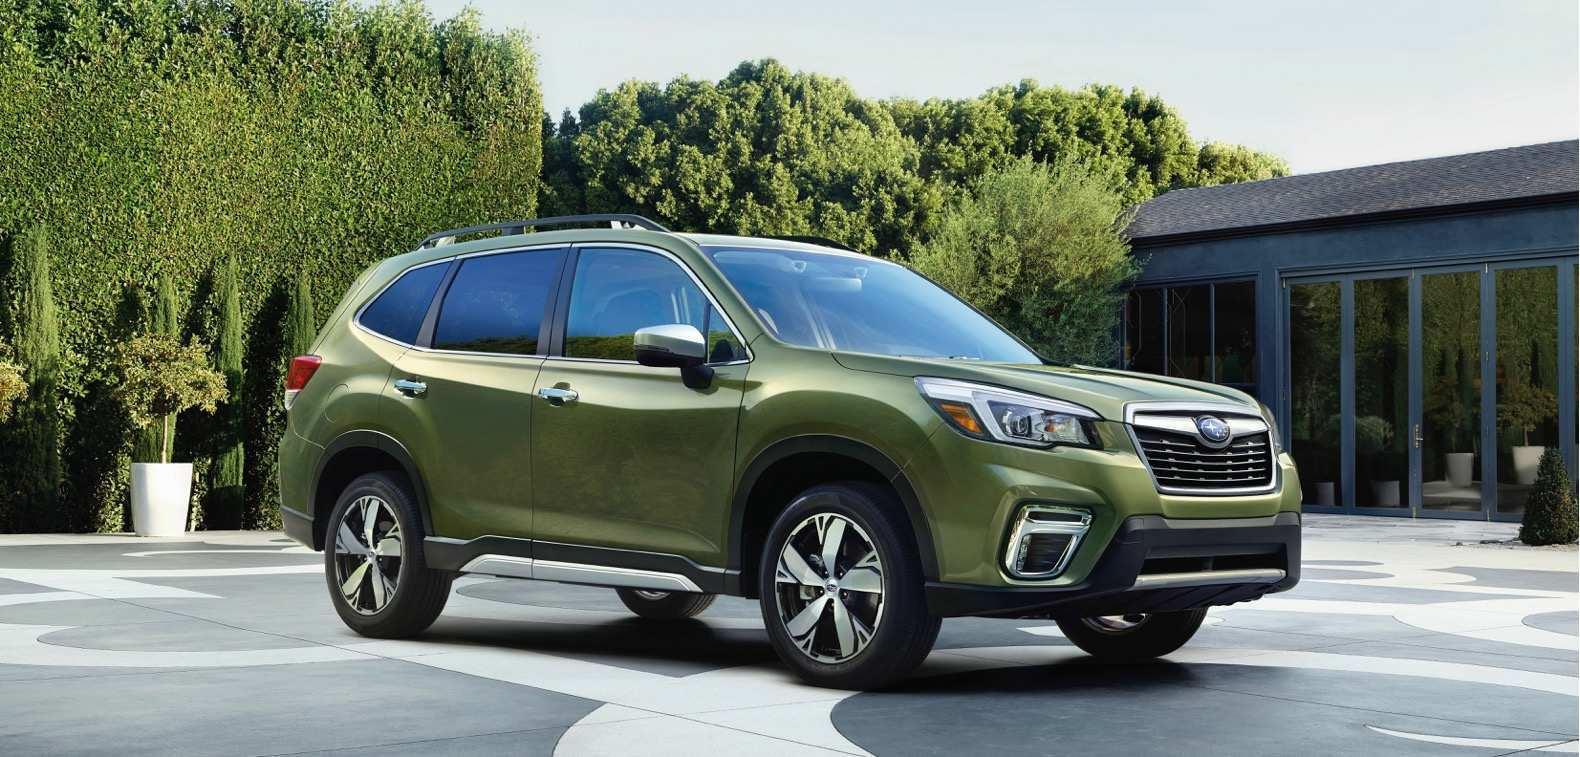 36 Gallery of 2019 Subaru Evoltis Pricing for 2019 Subaru Evoltis